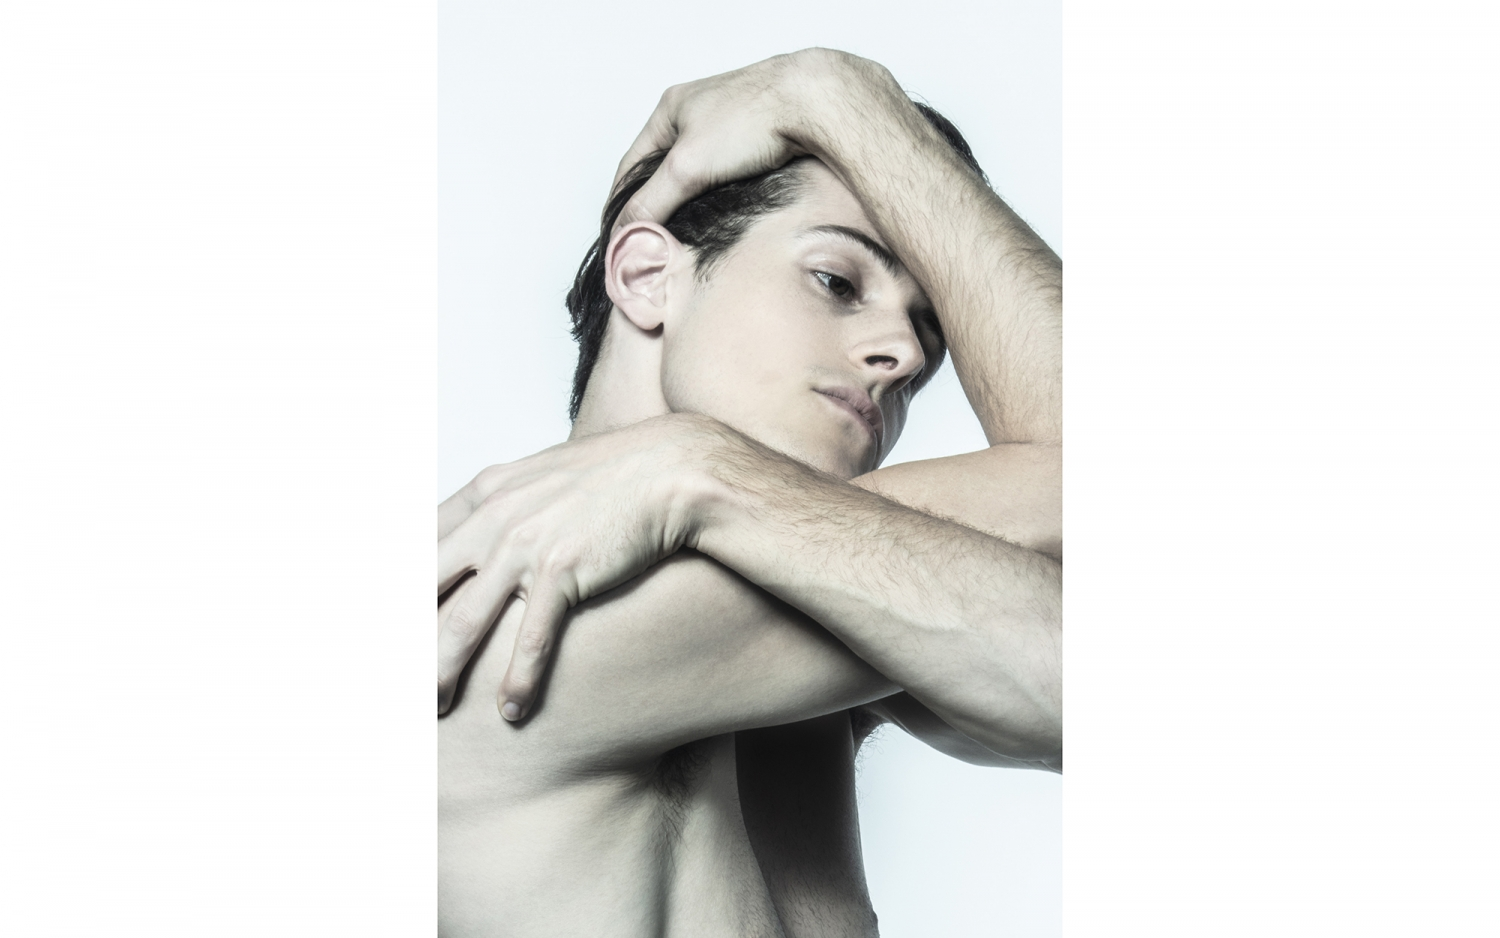 Color photo of young man holding his head in his arms.